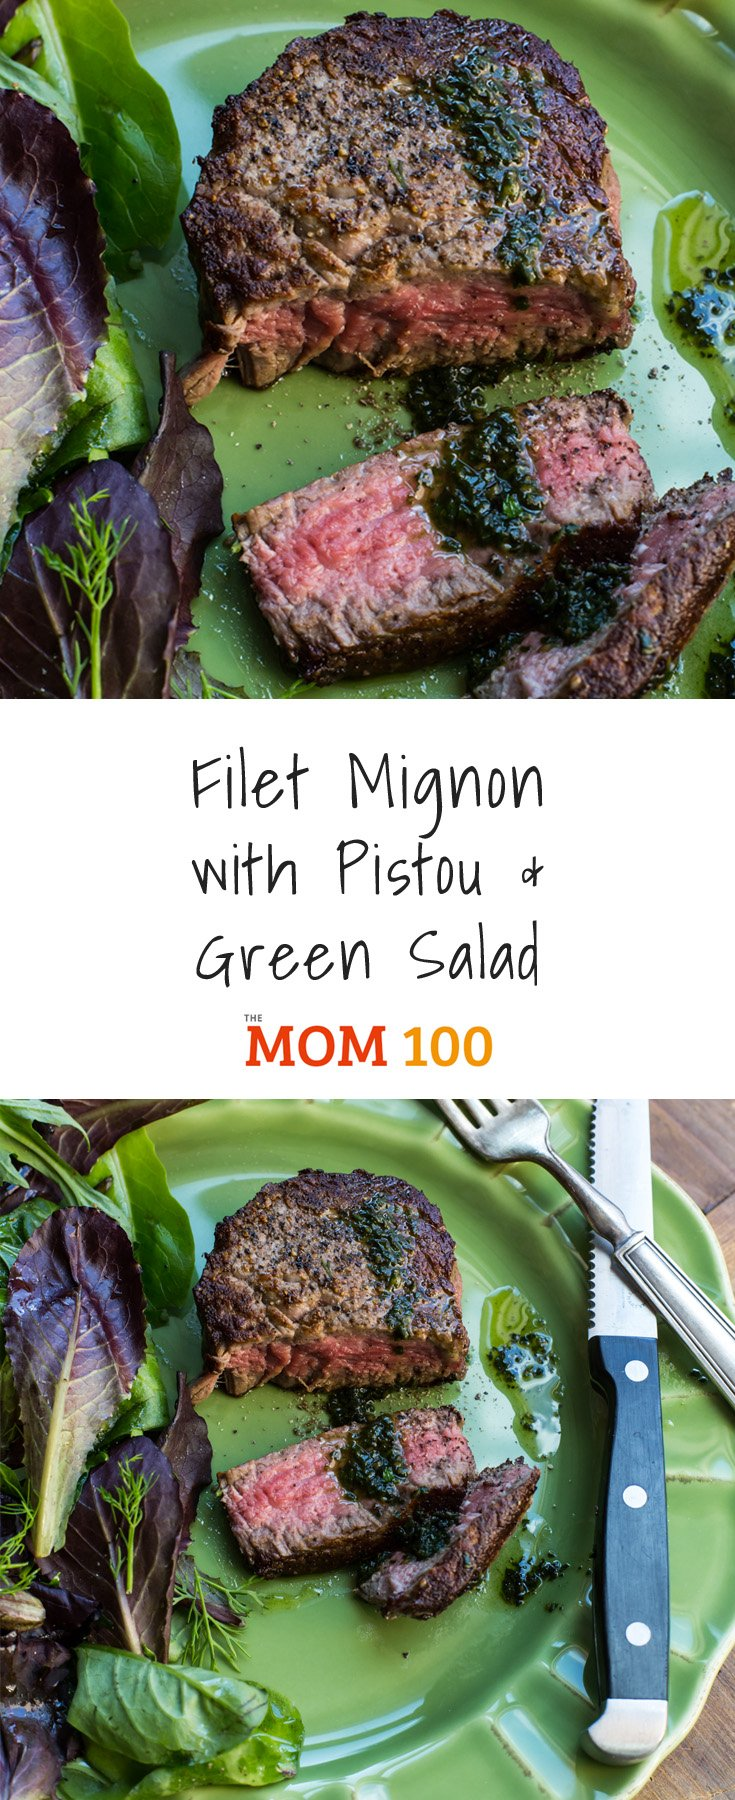 Filet Mignon with Pistou and Green Salad